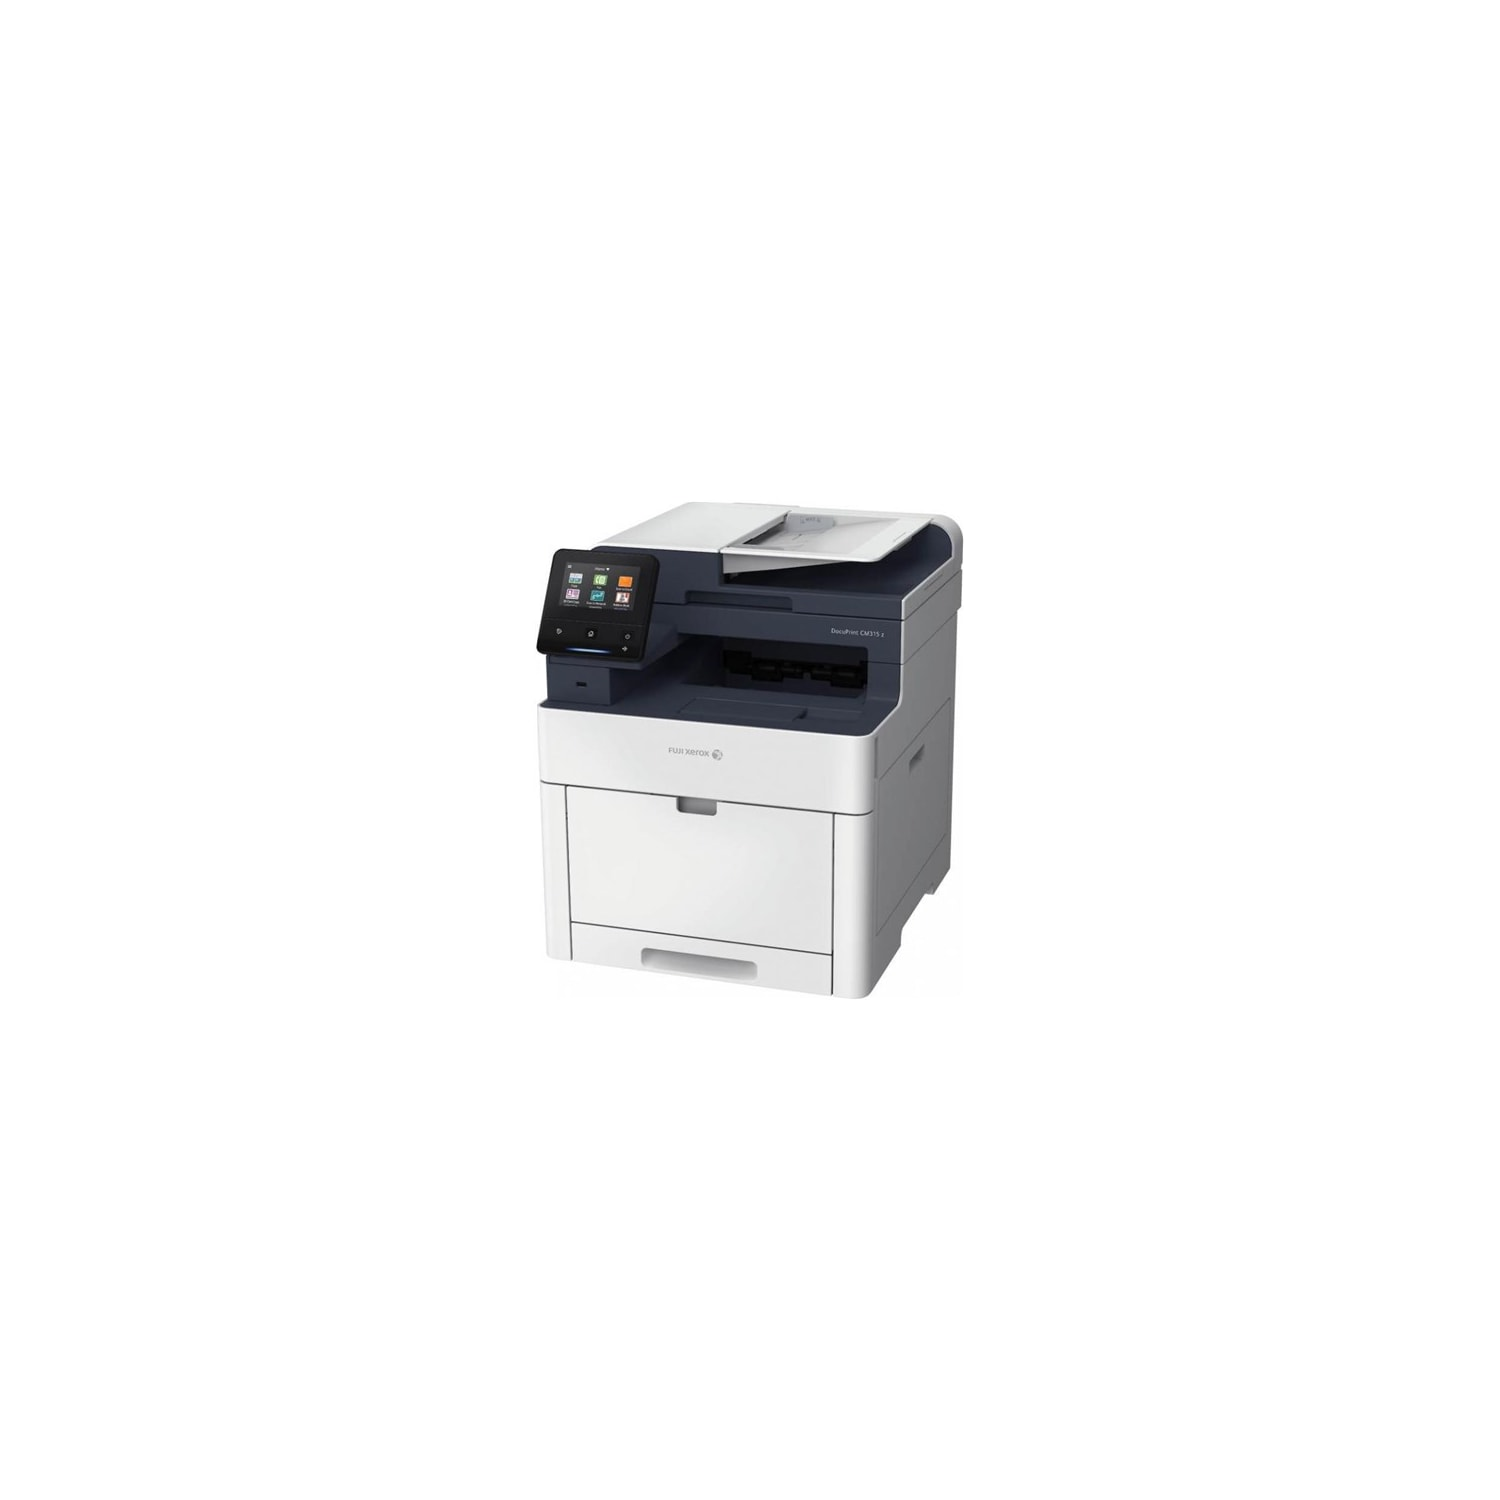 Fuji Xerox A4 Color MFP, Print/Copy/Scan/Email/Fax, 28PPM, 1200X2400dpi,  Usb/Nw/Wlan/Nfc, 733MHz, 1GB, Win/Osx/Linux